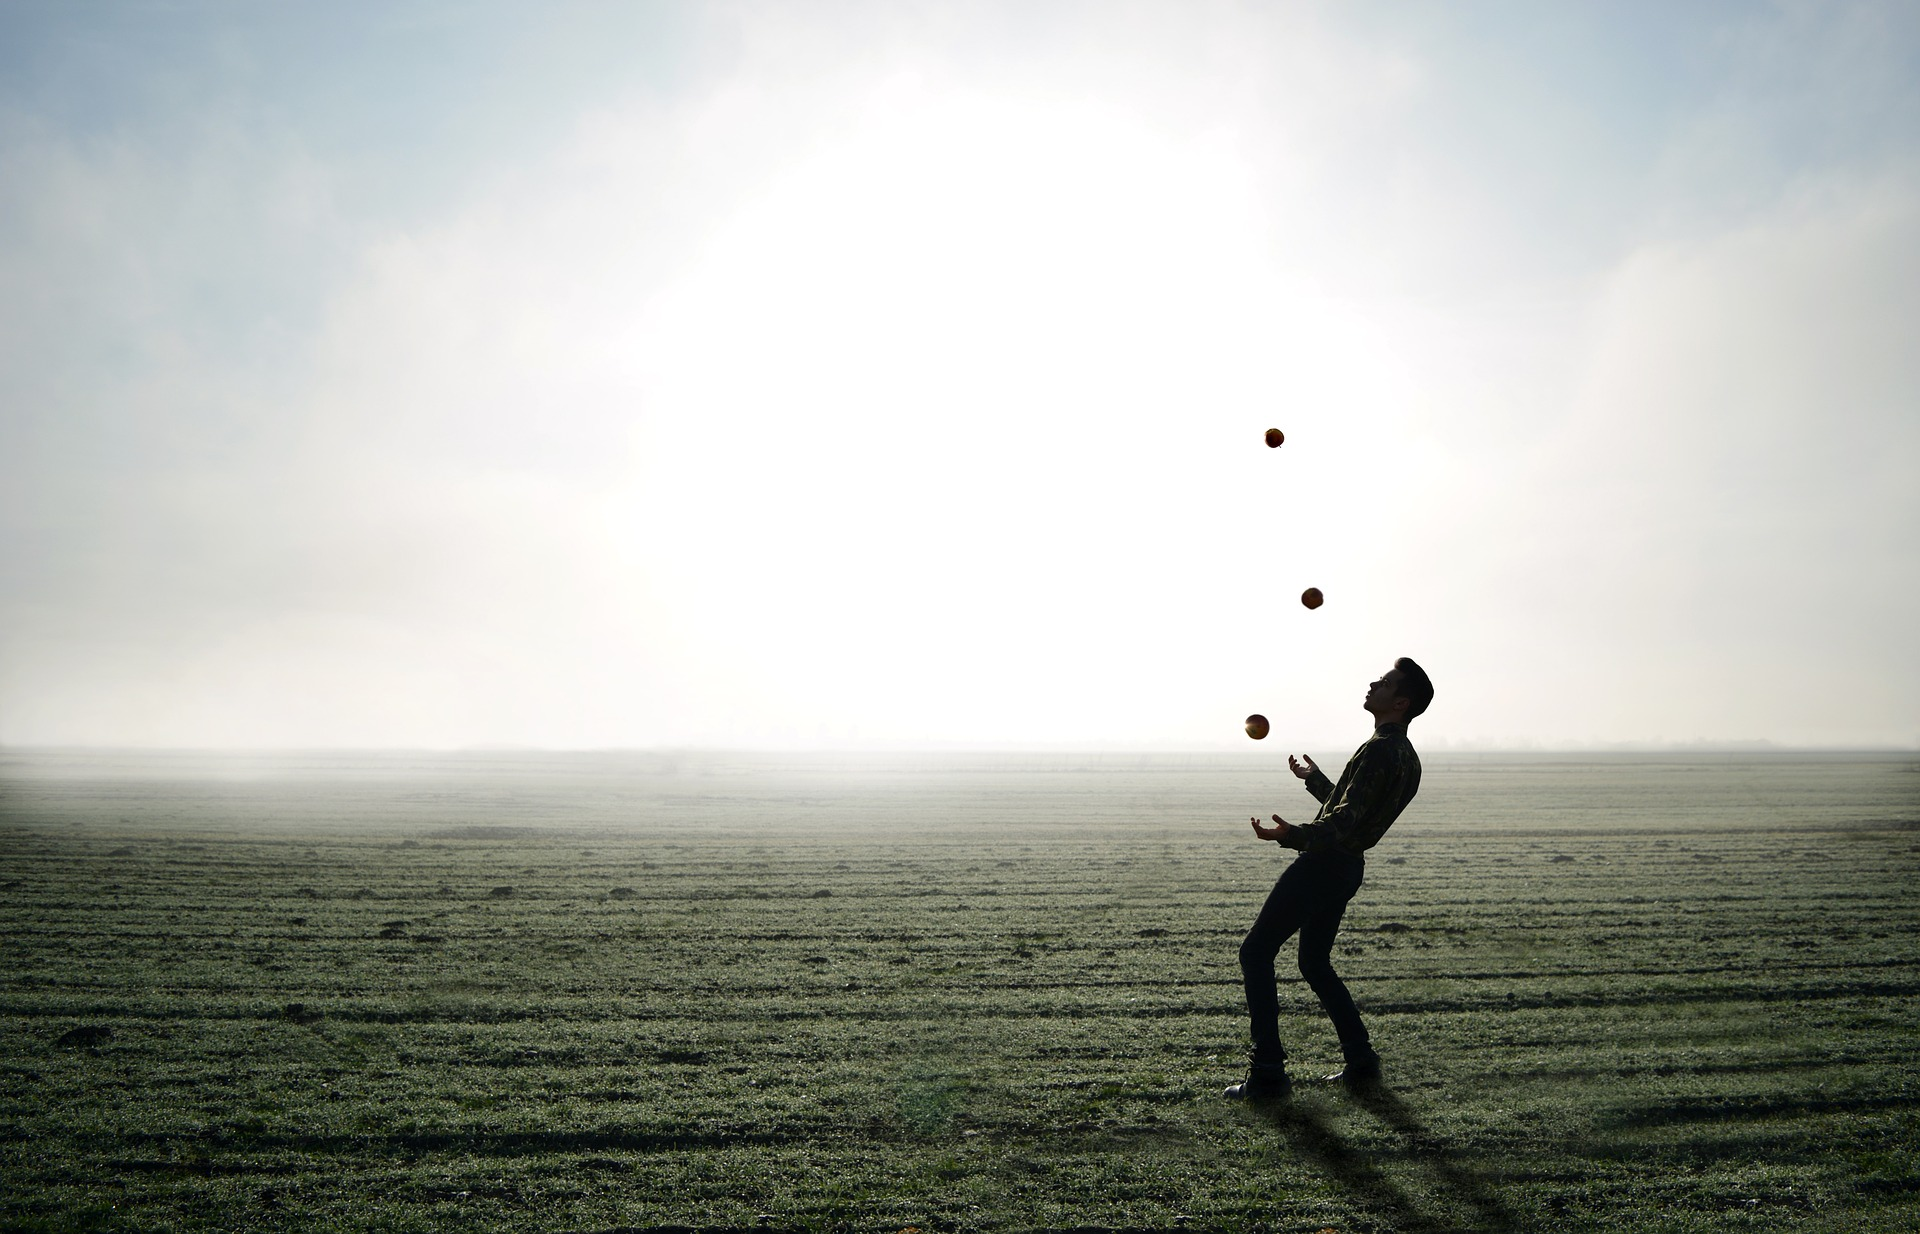 Image of a man juggling on a beach